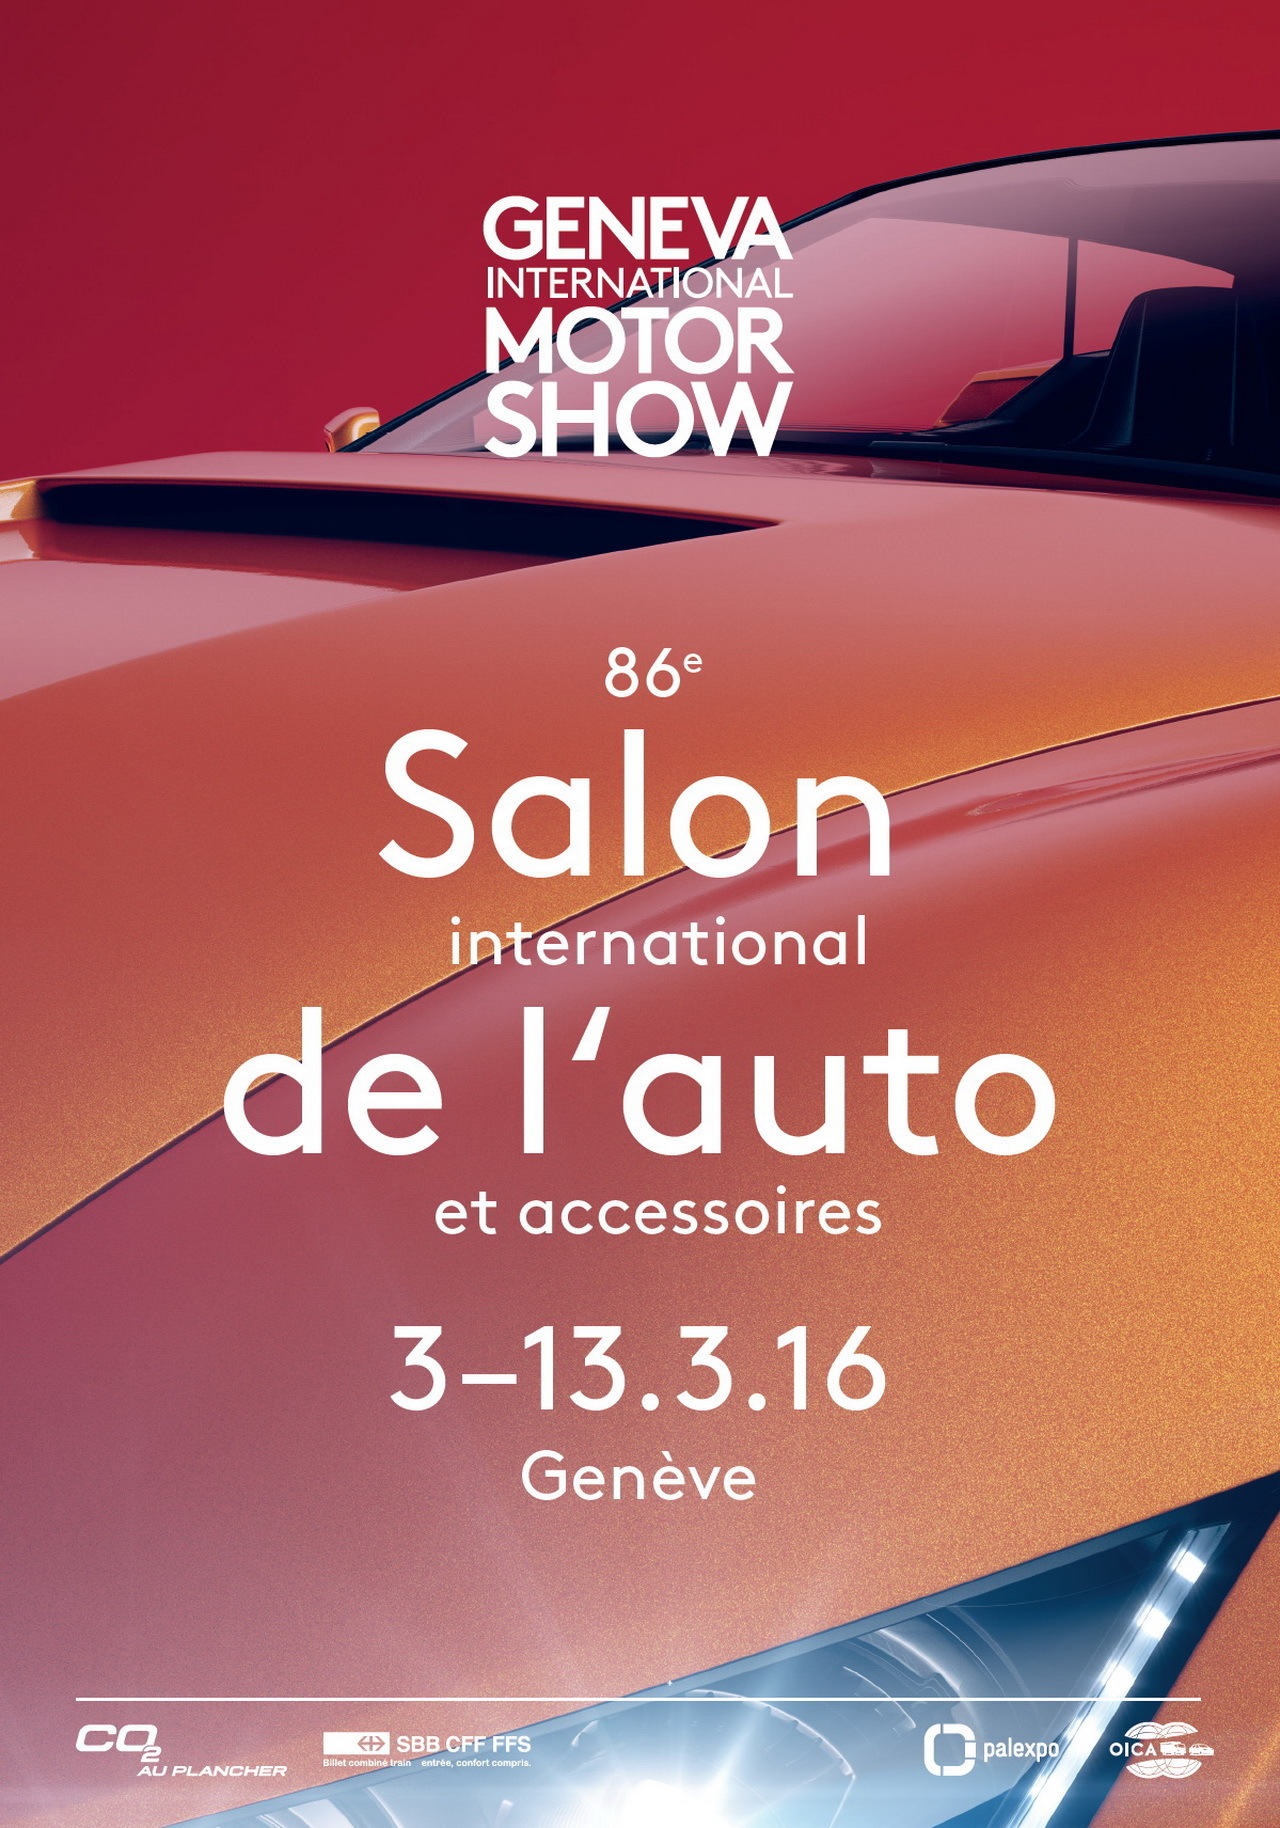 Salon de l 39 auto de gen ve let 39 s go le blog de mister for Salon de l auto geneve tarif